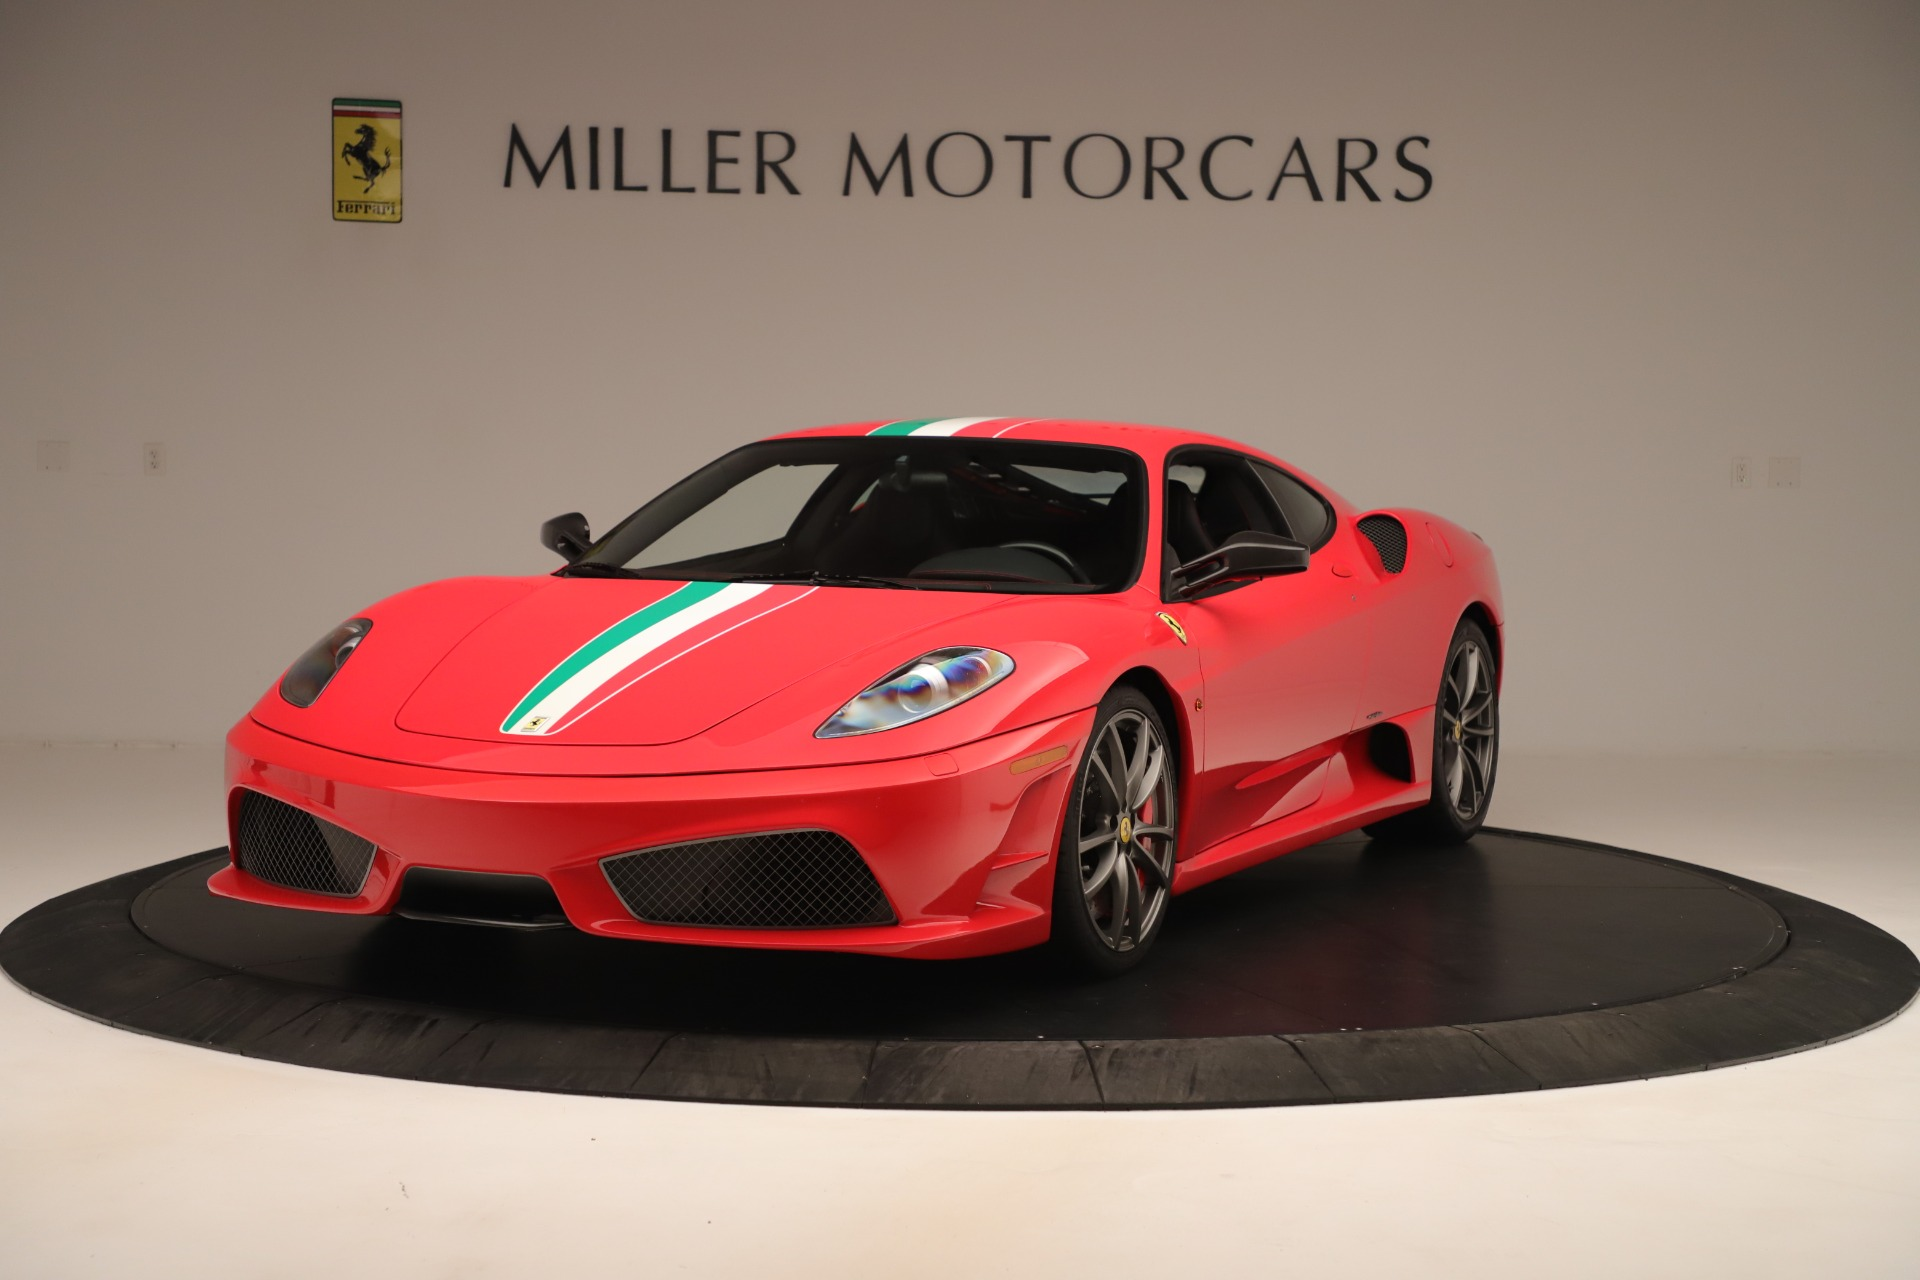 Pre Owned 2008 Ferrari F430 Scuderia For Sale 229 900 Miller Motorcars Stock 4599